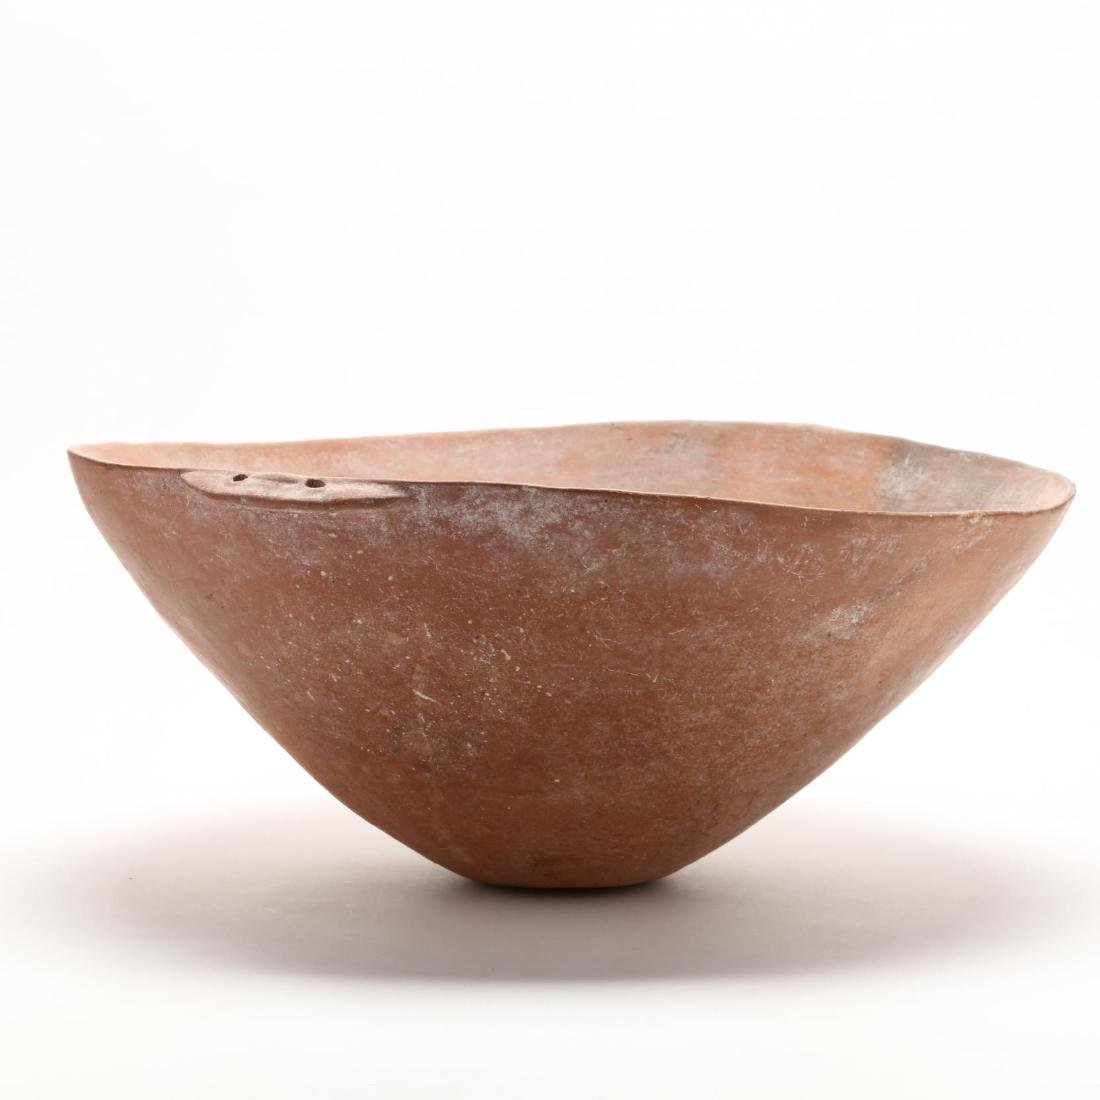 Cypriot Bronze Age Large Polished Red Ware Bowl - 4